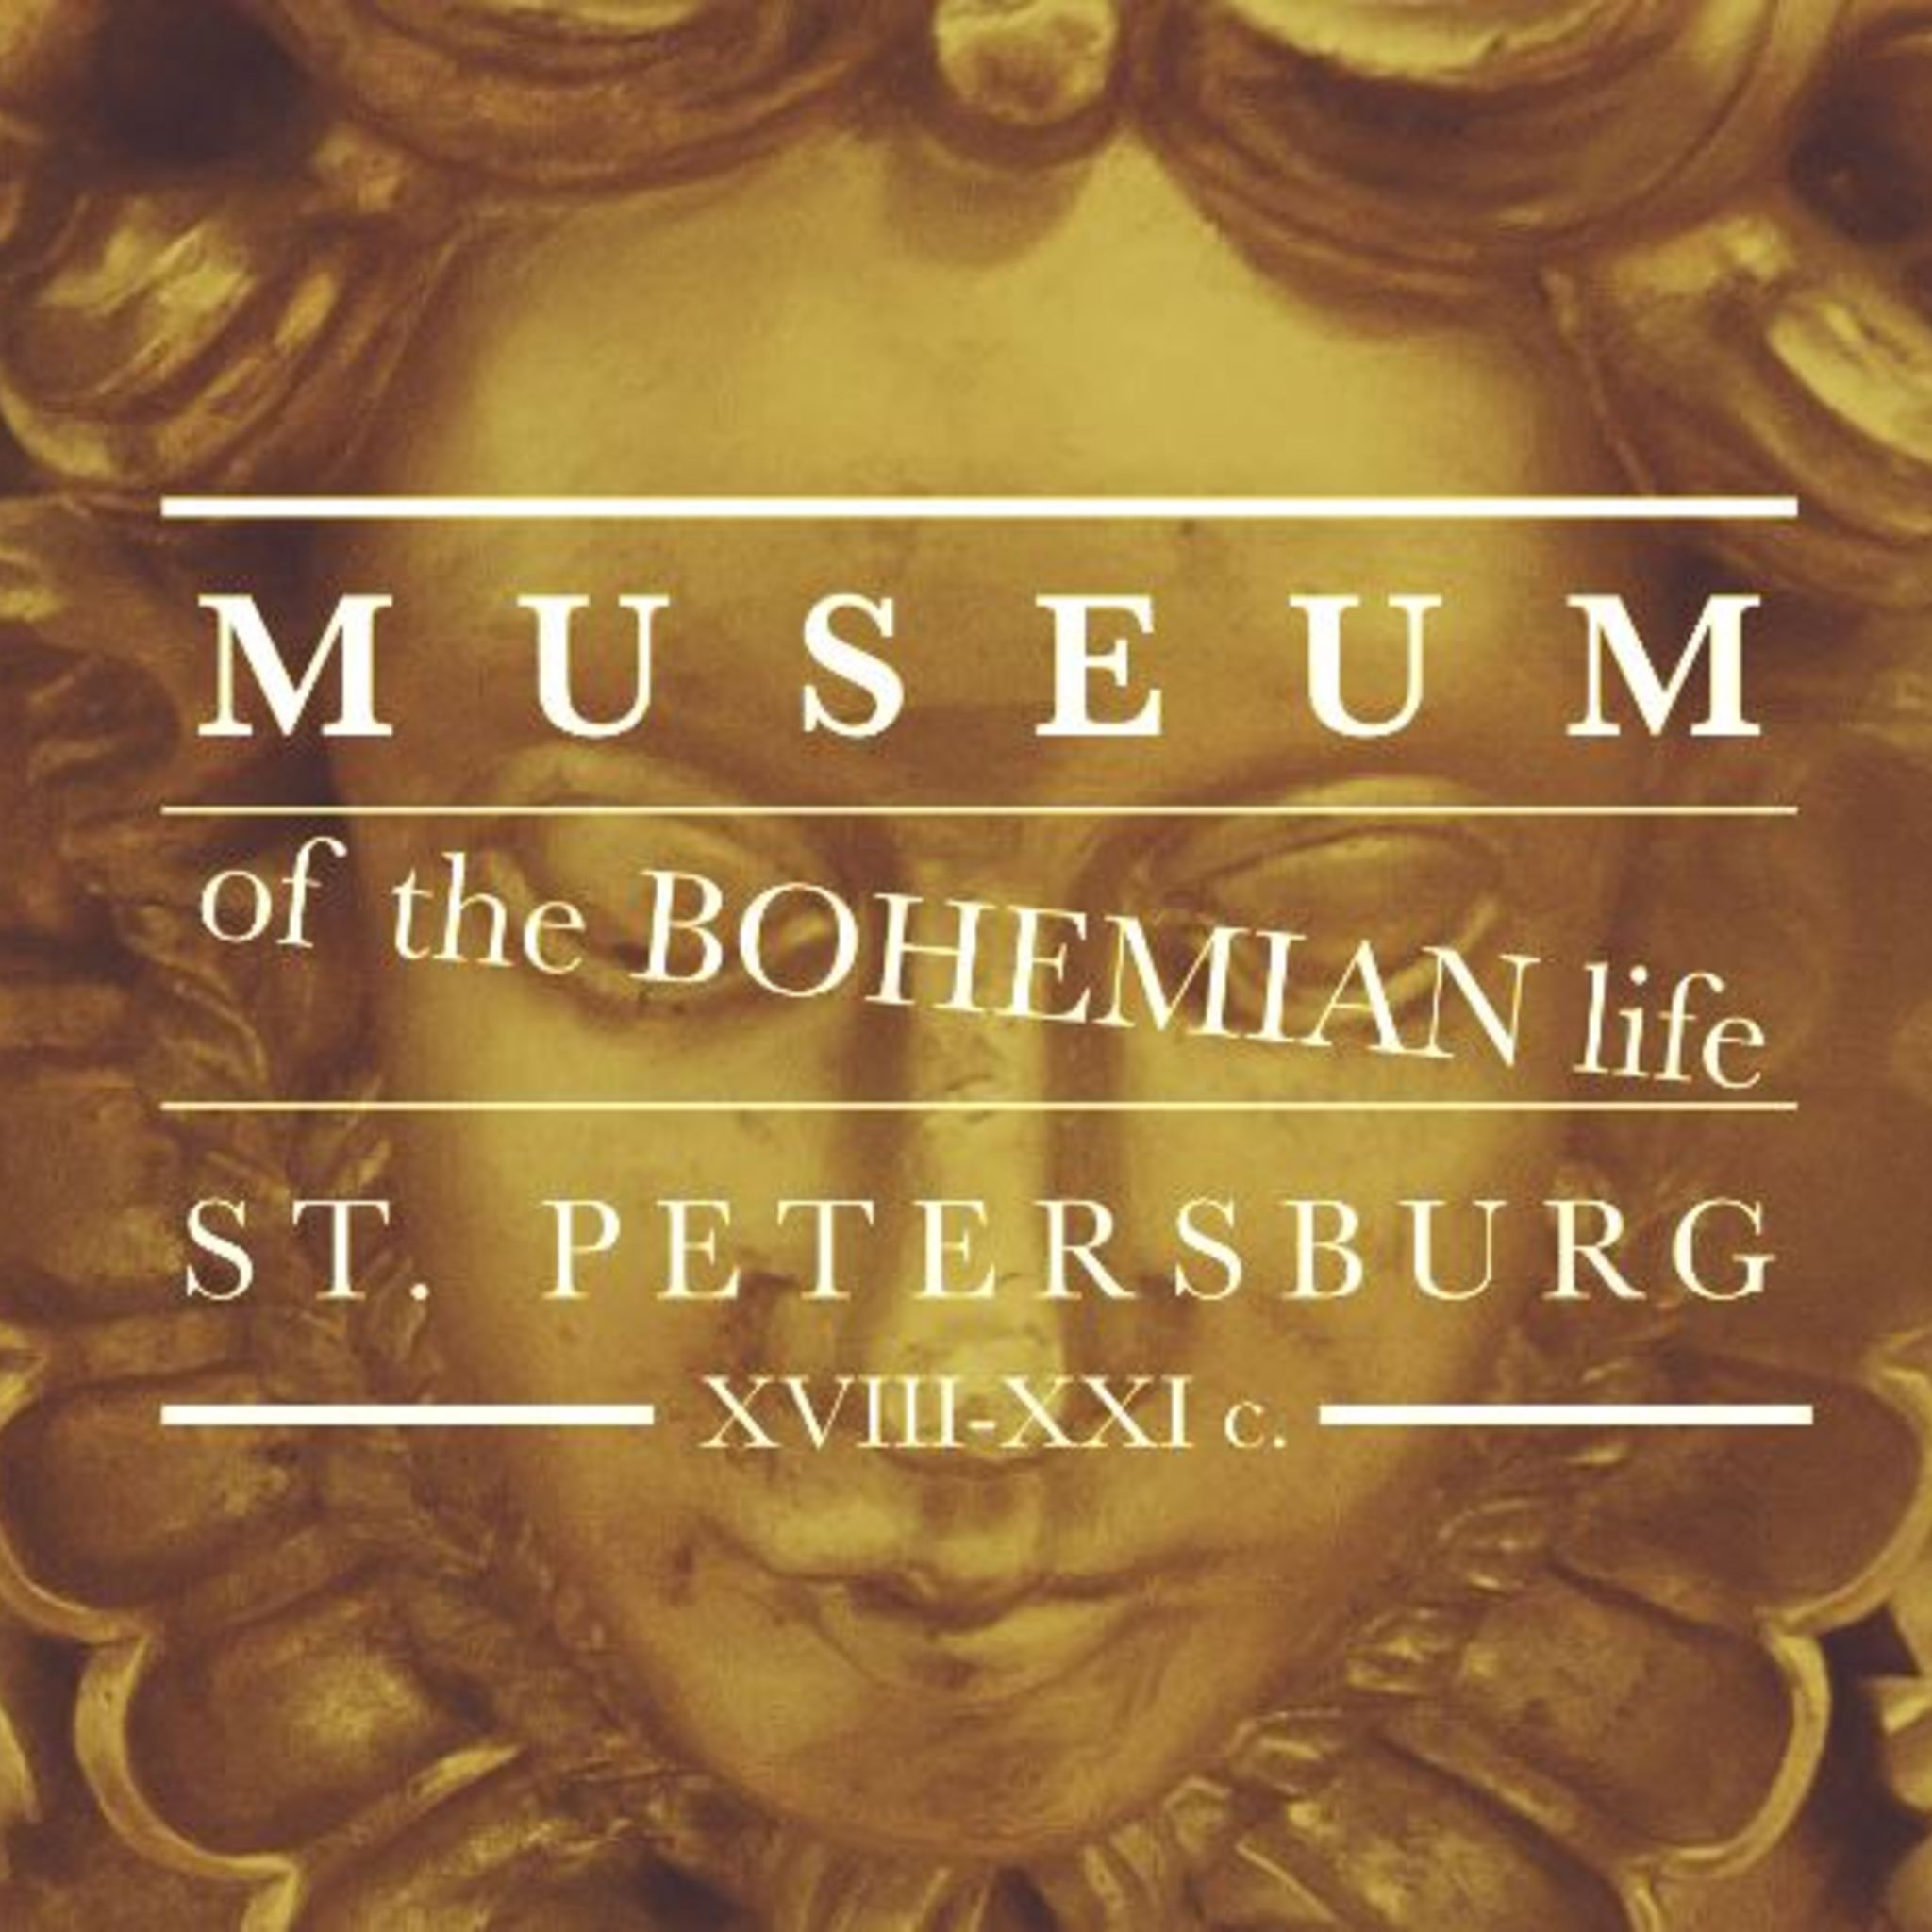 Museum of Bohemian life in St. Petersburg